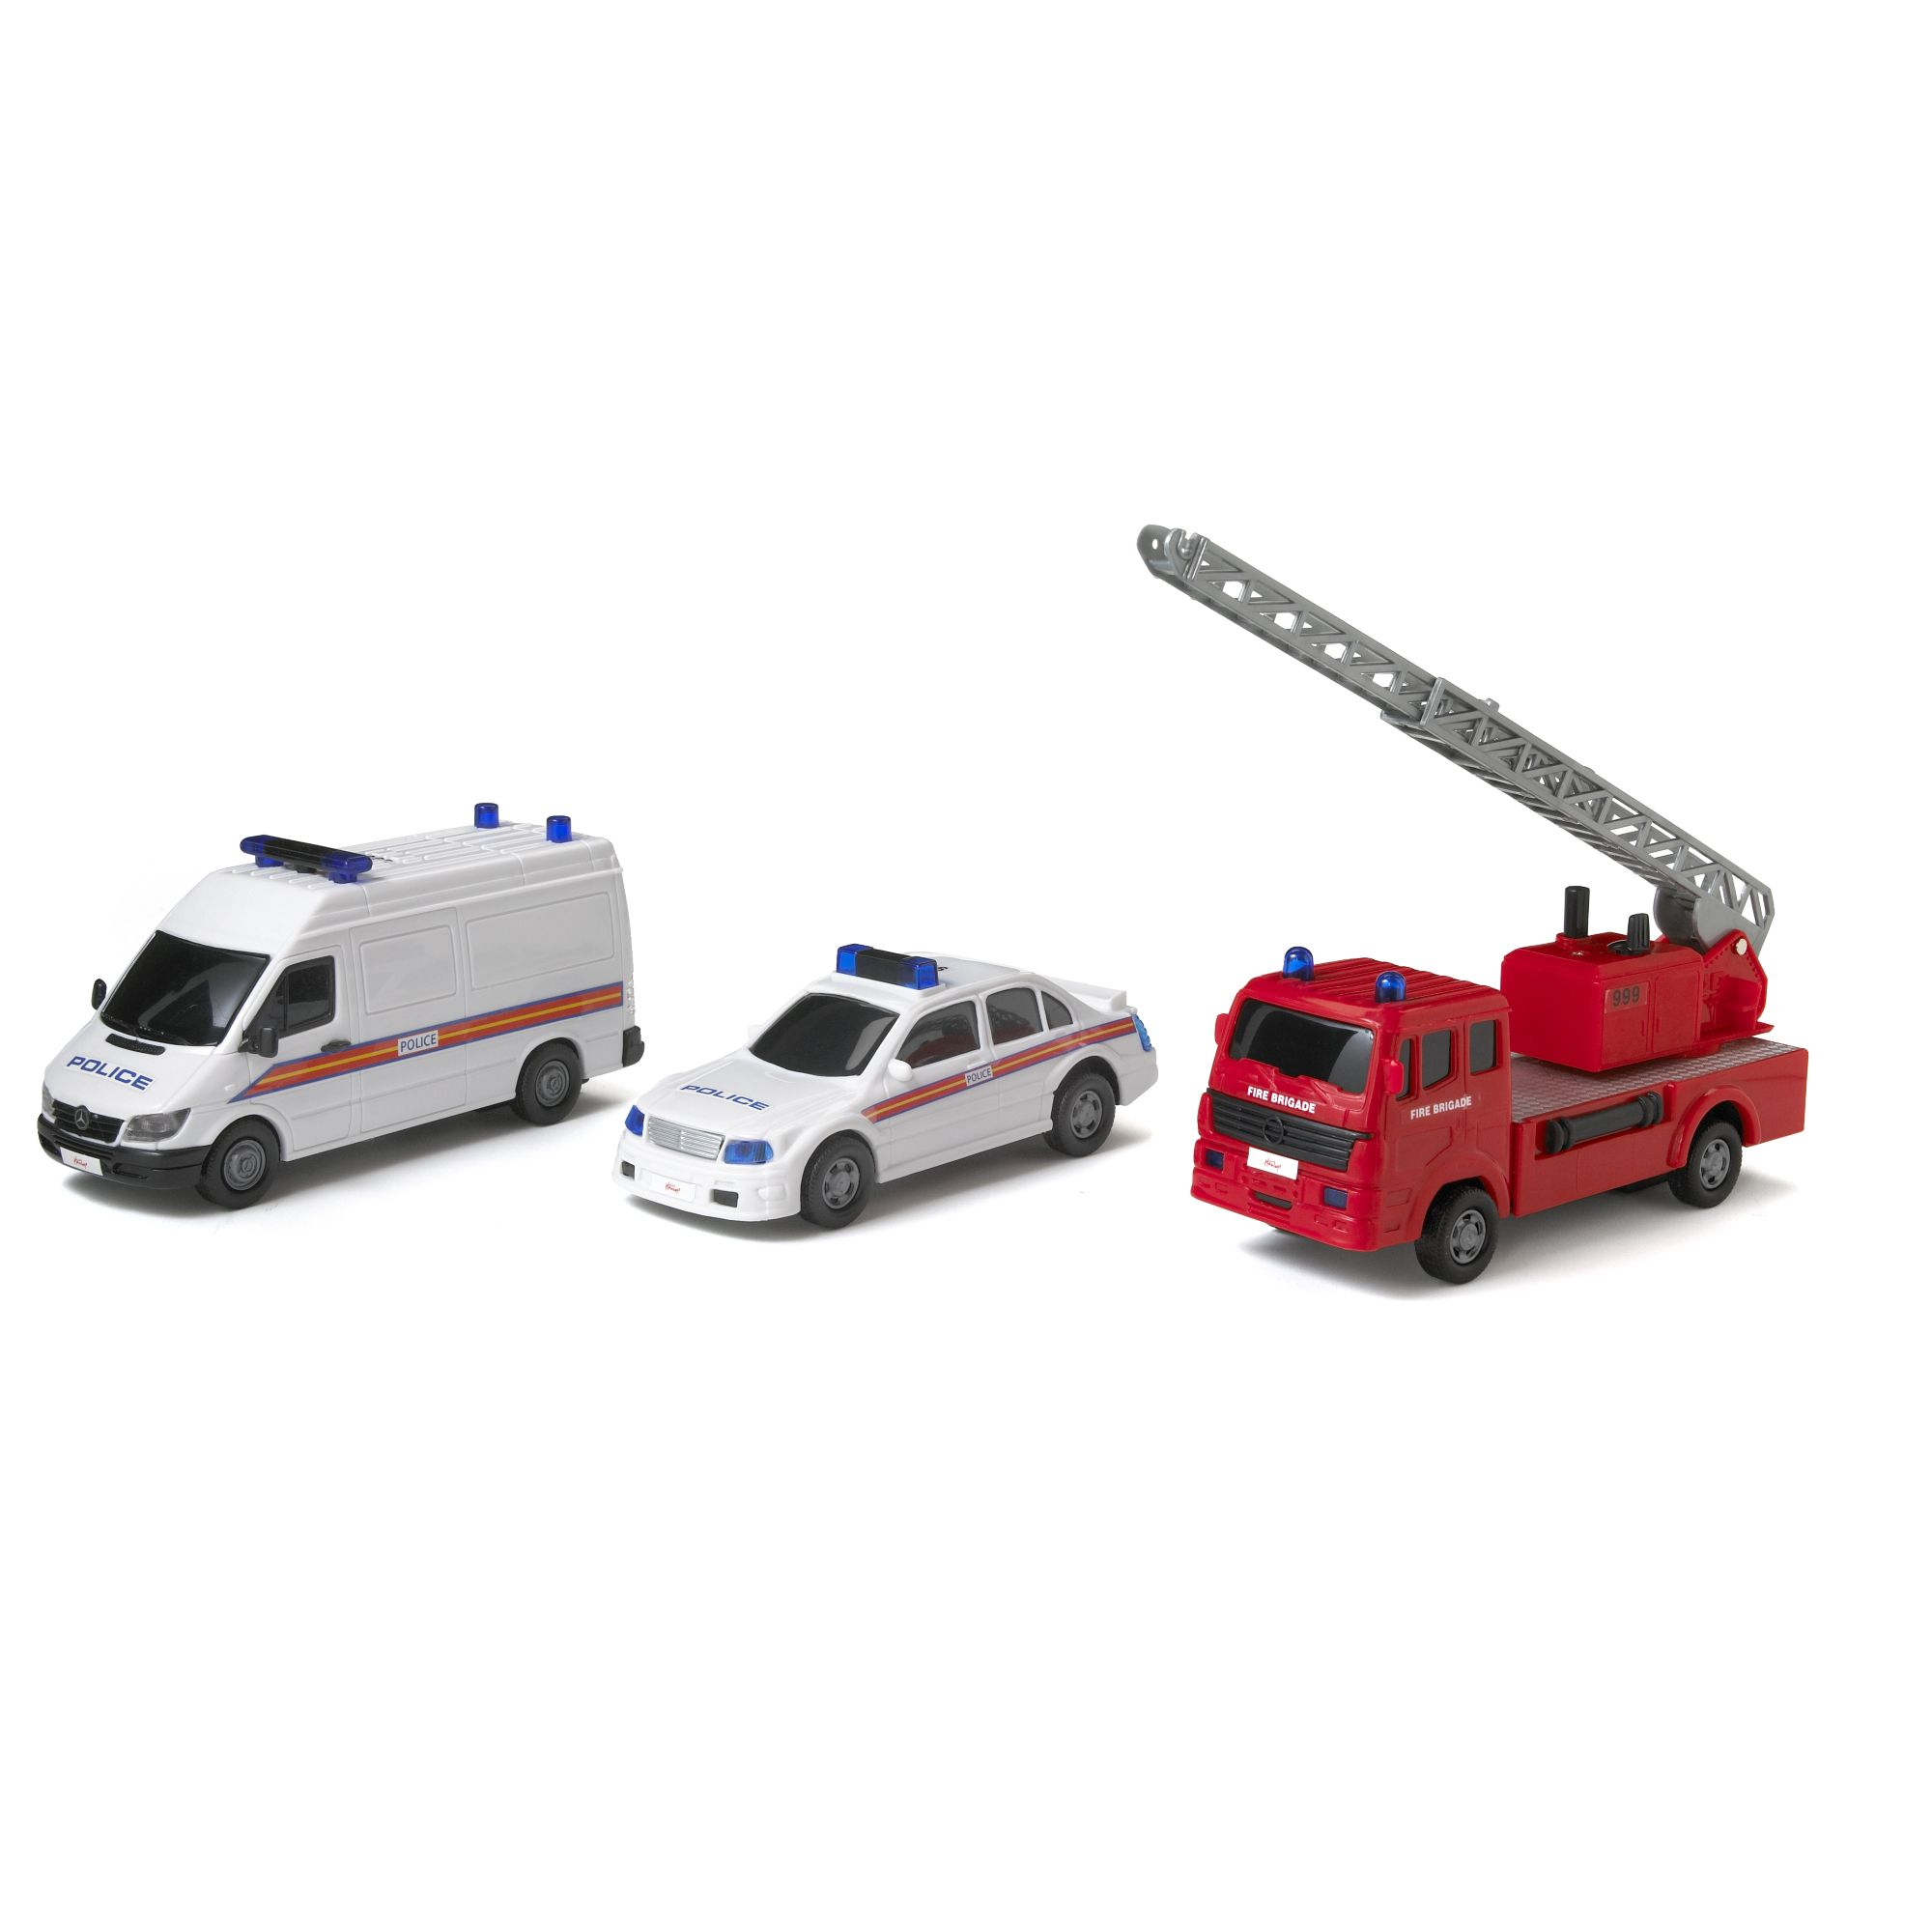 Emergency vehicle 3pack